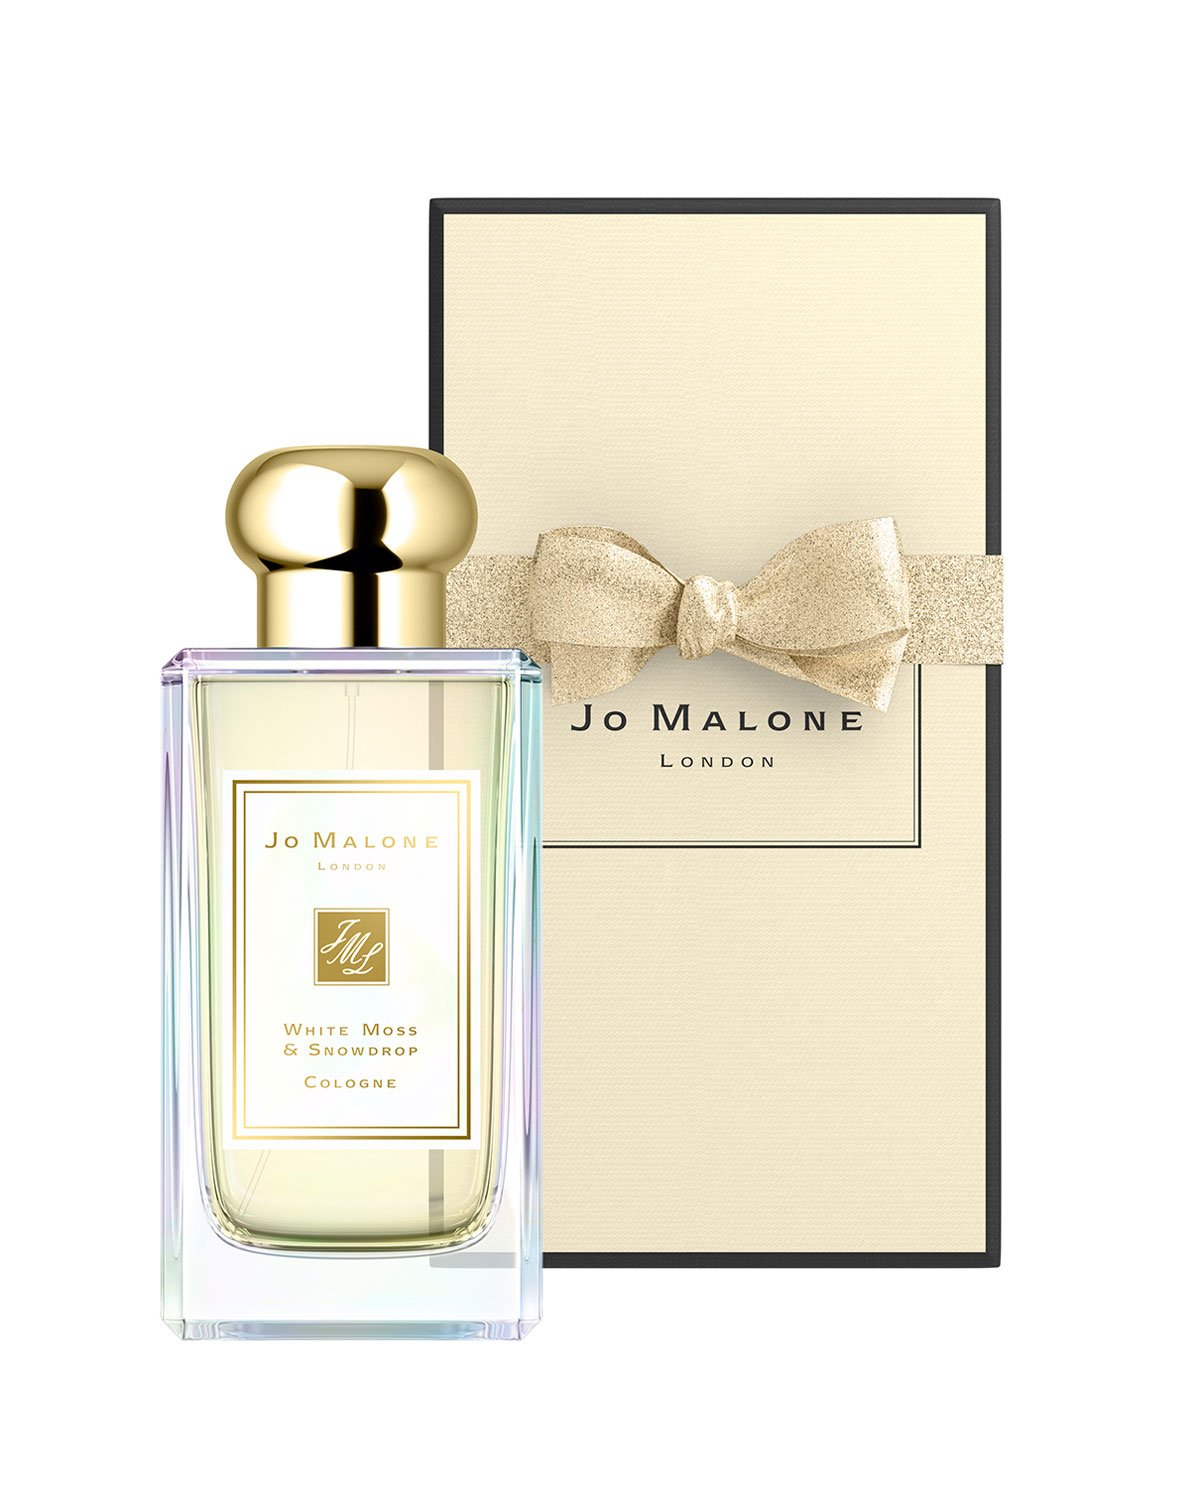 духи Jo Malone London White Moss & Snowdrop